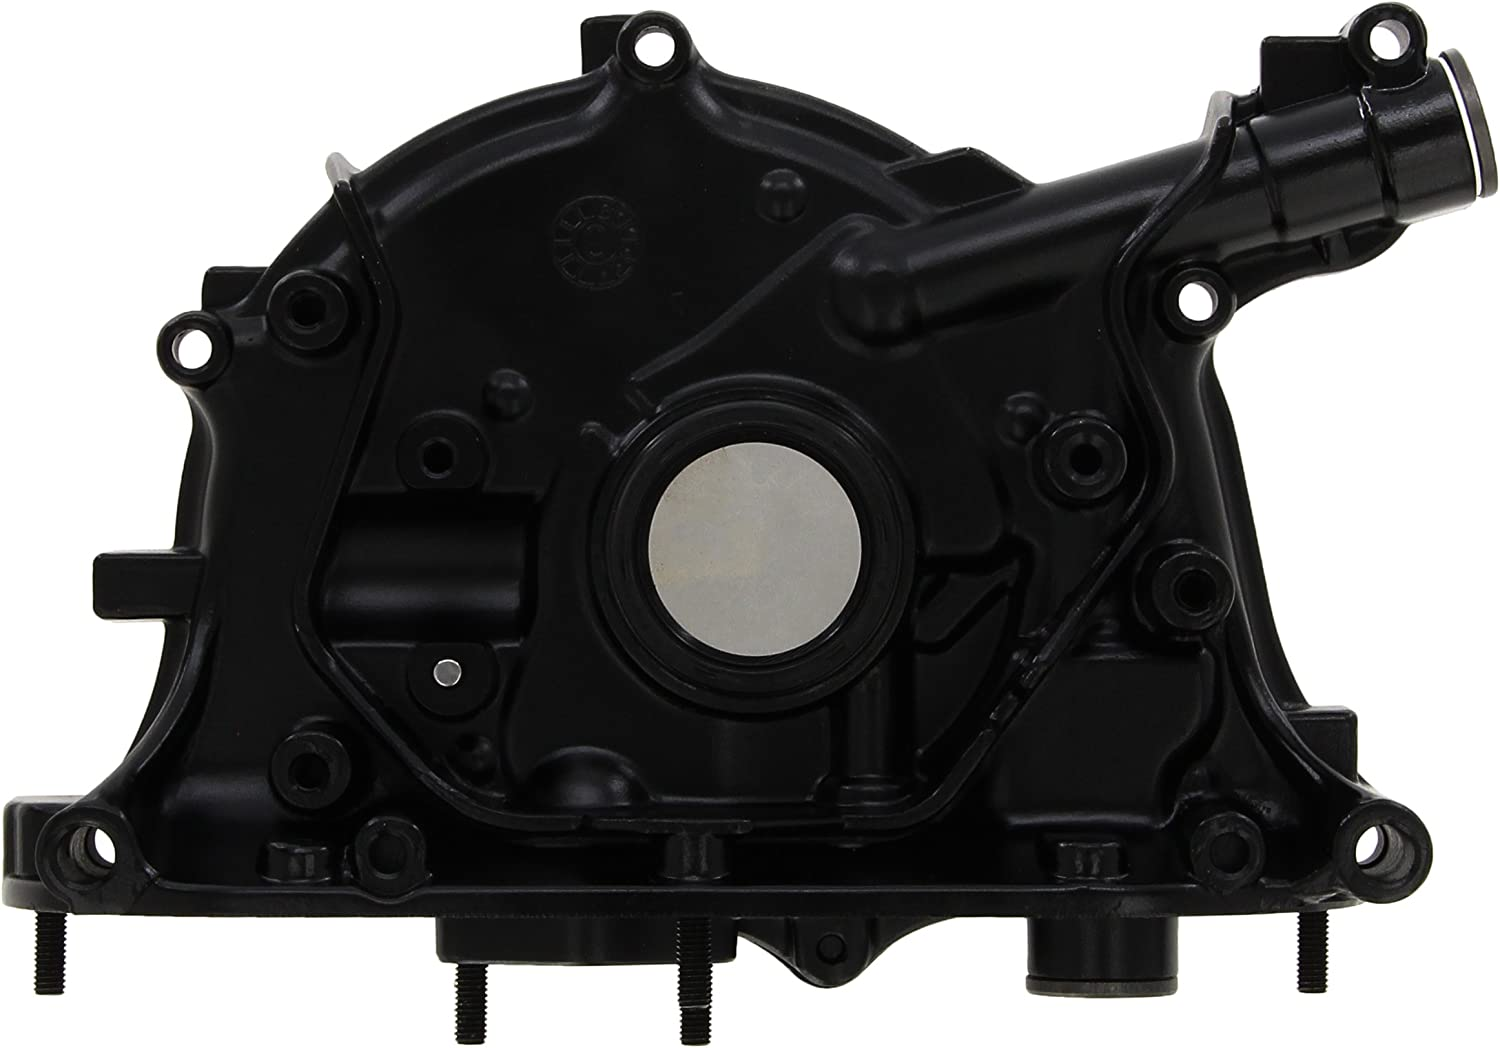 ACL OPHD1194HP Our shop OFFers the best Clearance SALE! Limited time! service High Performance for Oil Pump Honda